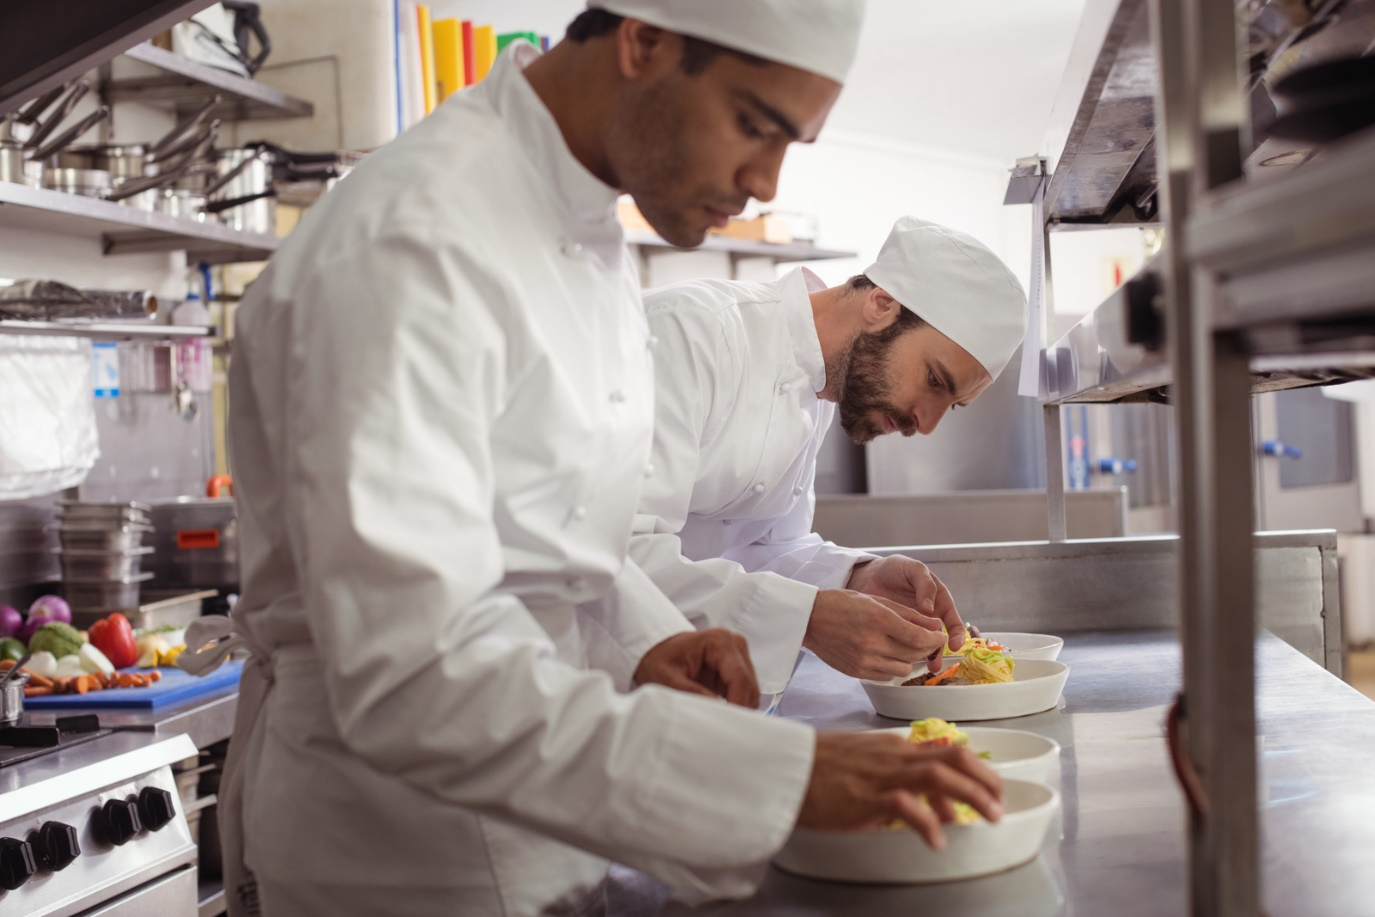 4 Ways Restaurants and Food Businesses Can Use Video